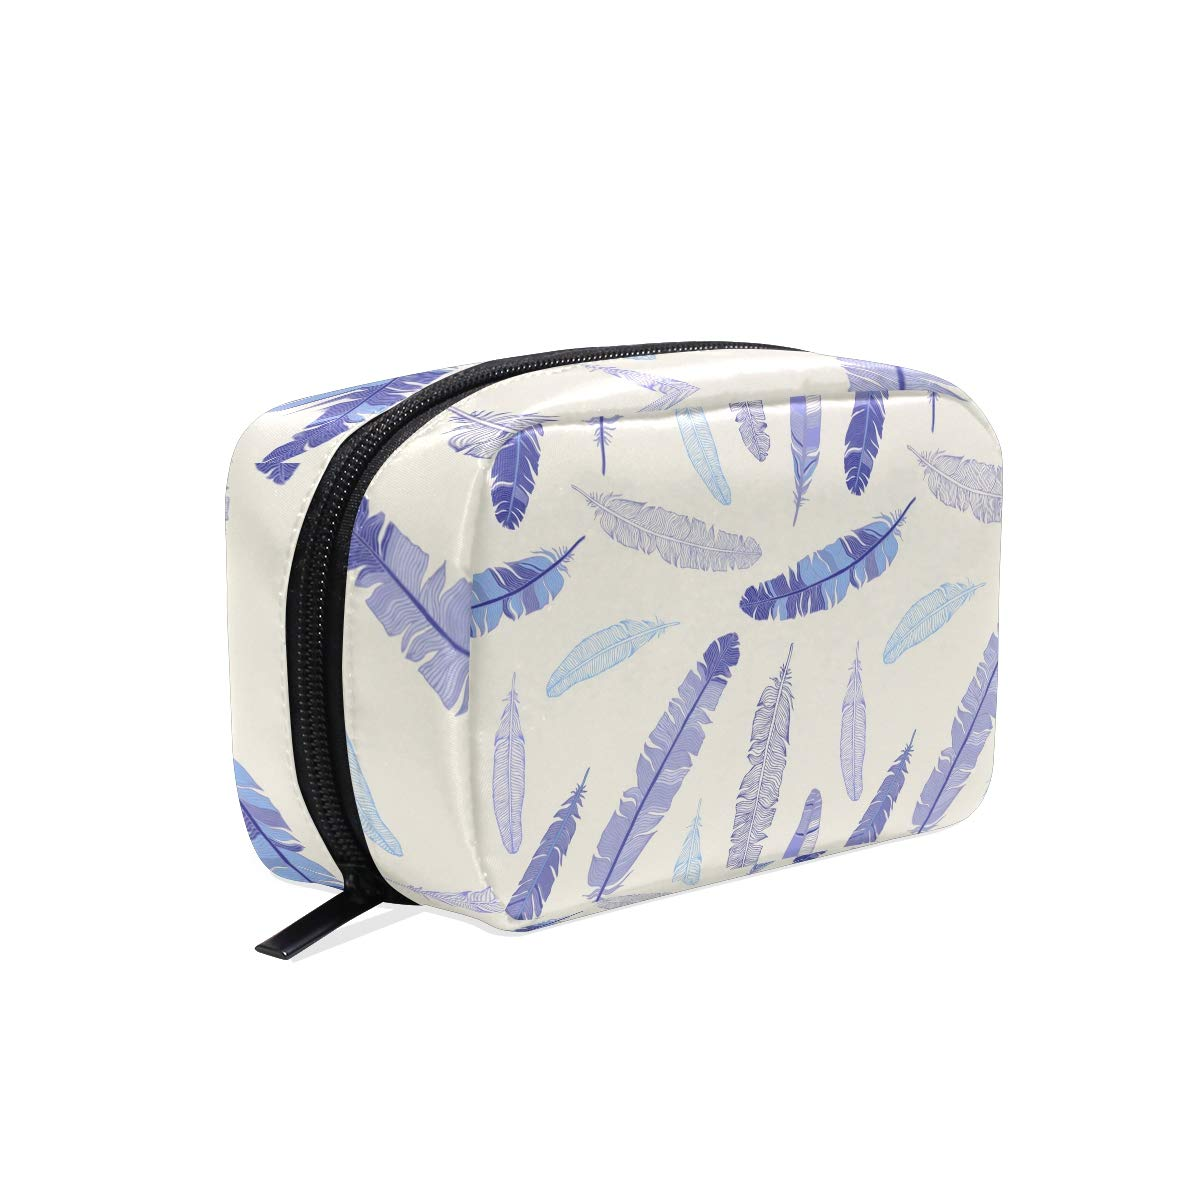 8a55a5443cc1 Amazon.com : Blue Sparse Feather Women's Large Cosmetic Makeup Bag ...